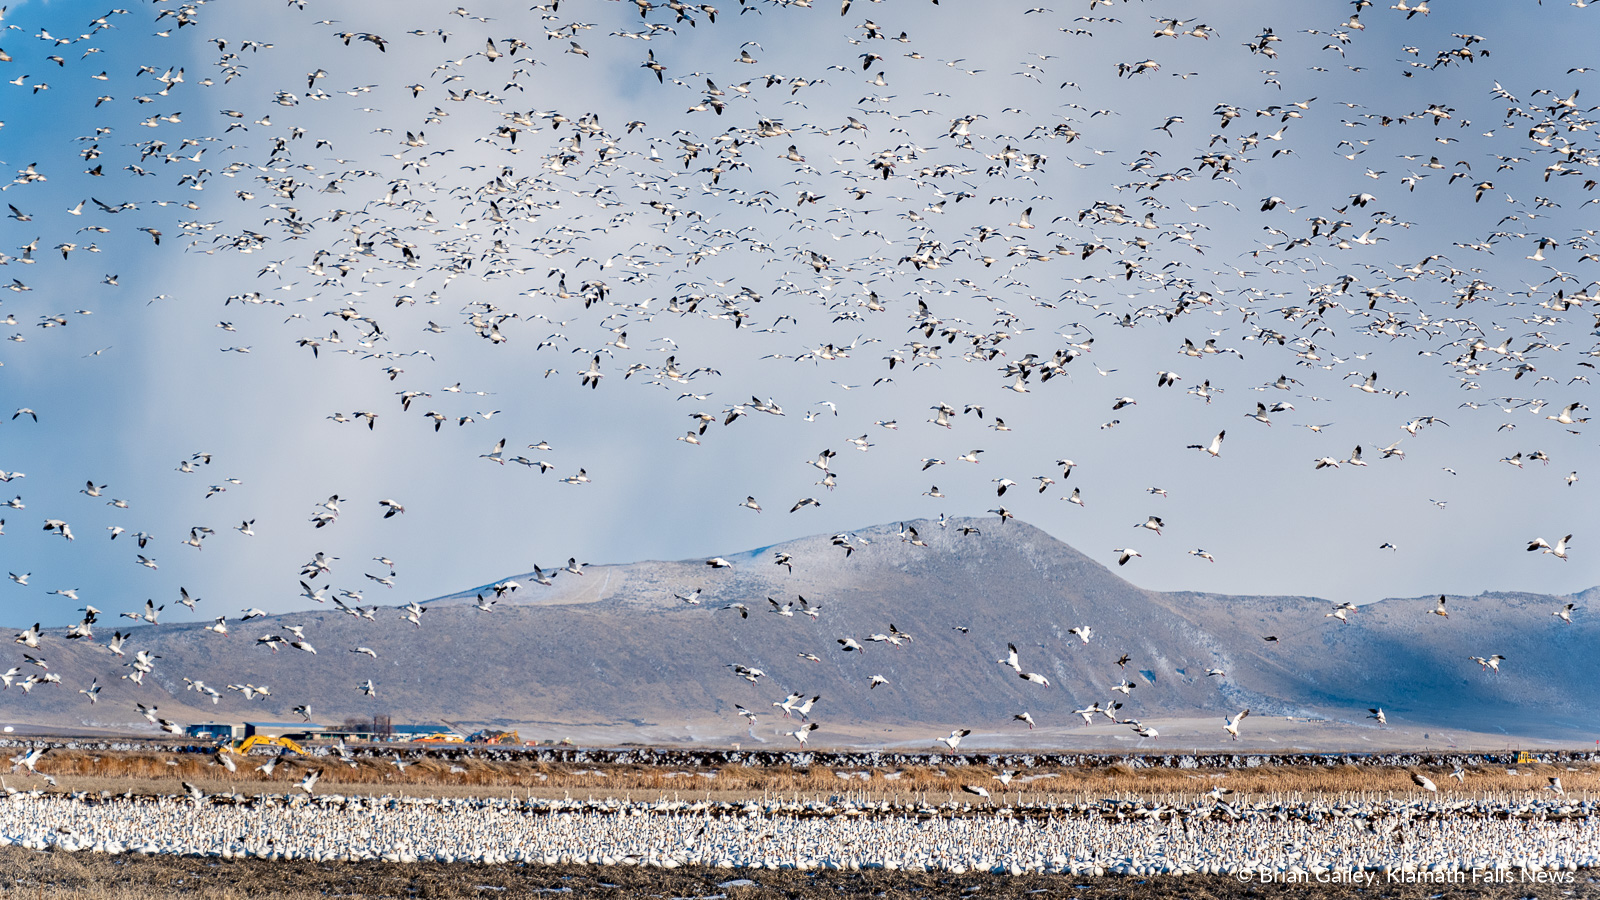 Waterfowl at the Lower Klamath NWR. February 17, 2019 (Image by, Brian Gailey / Klamath Falls News)